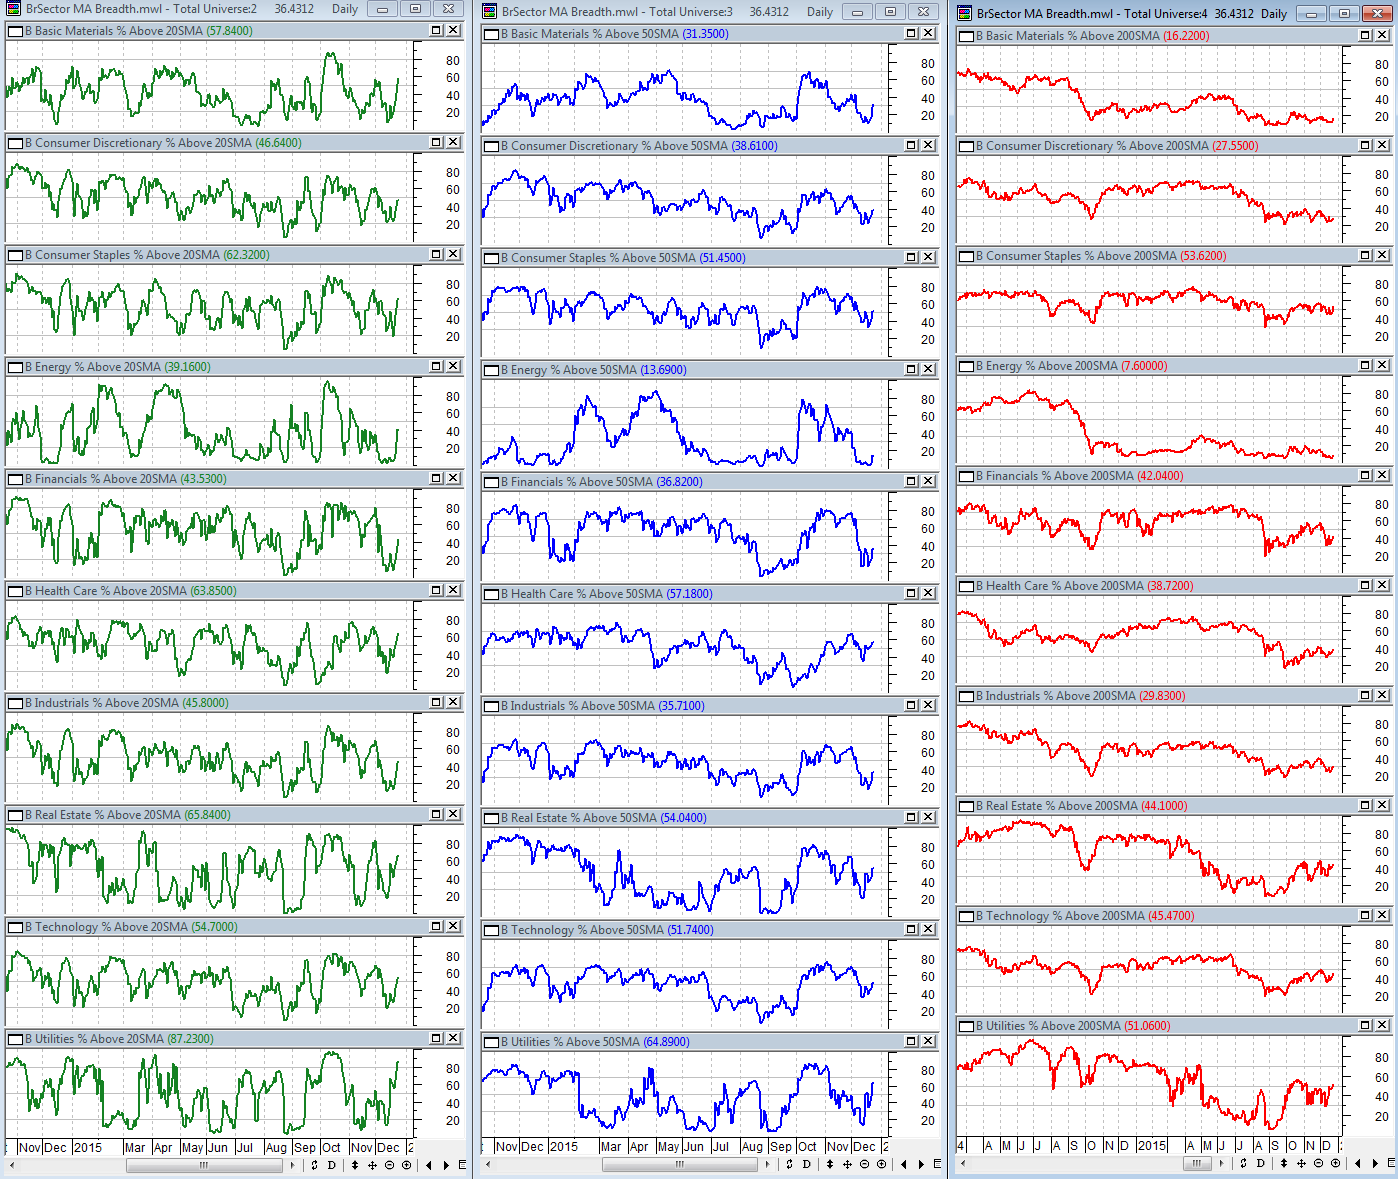 12-24-2015 BSec MA Breadth Dashboard